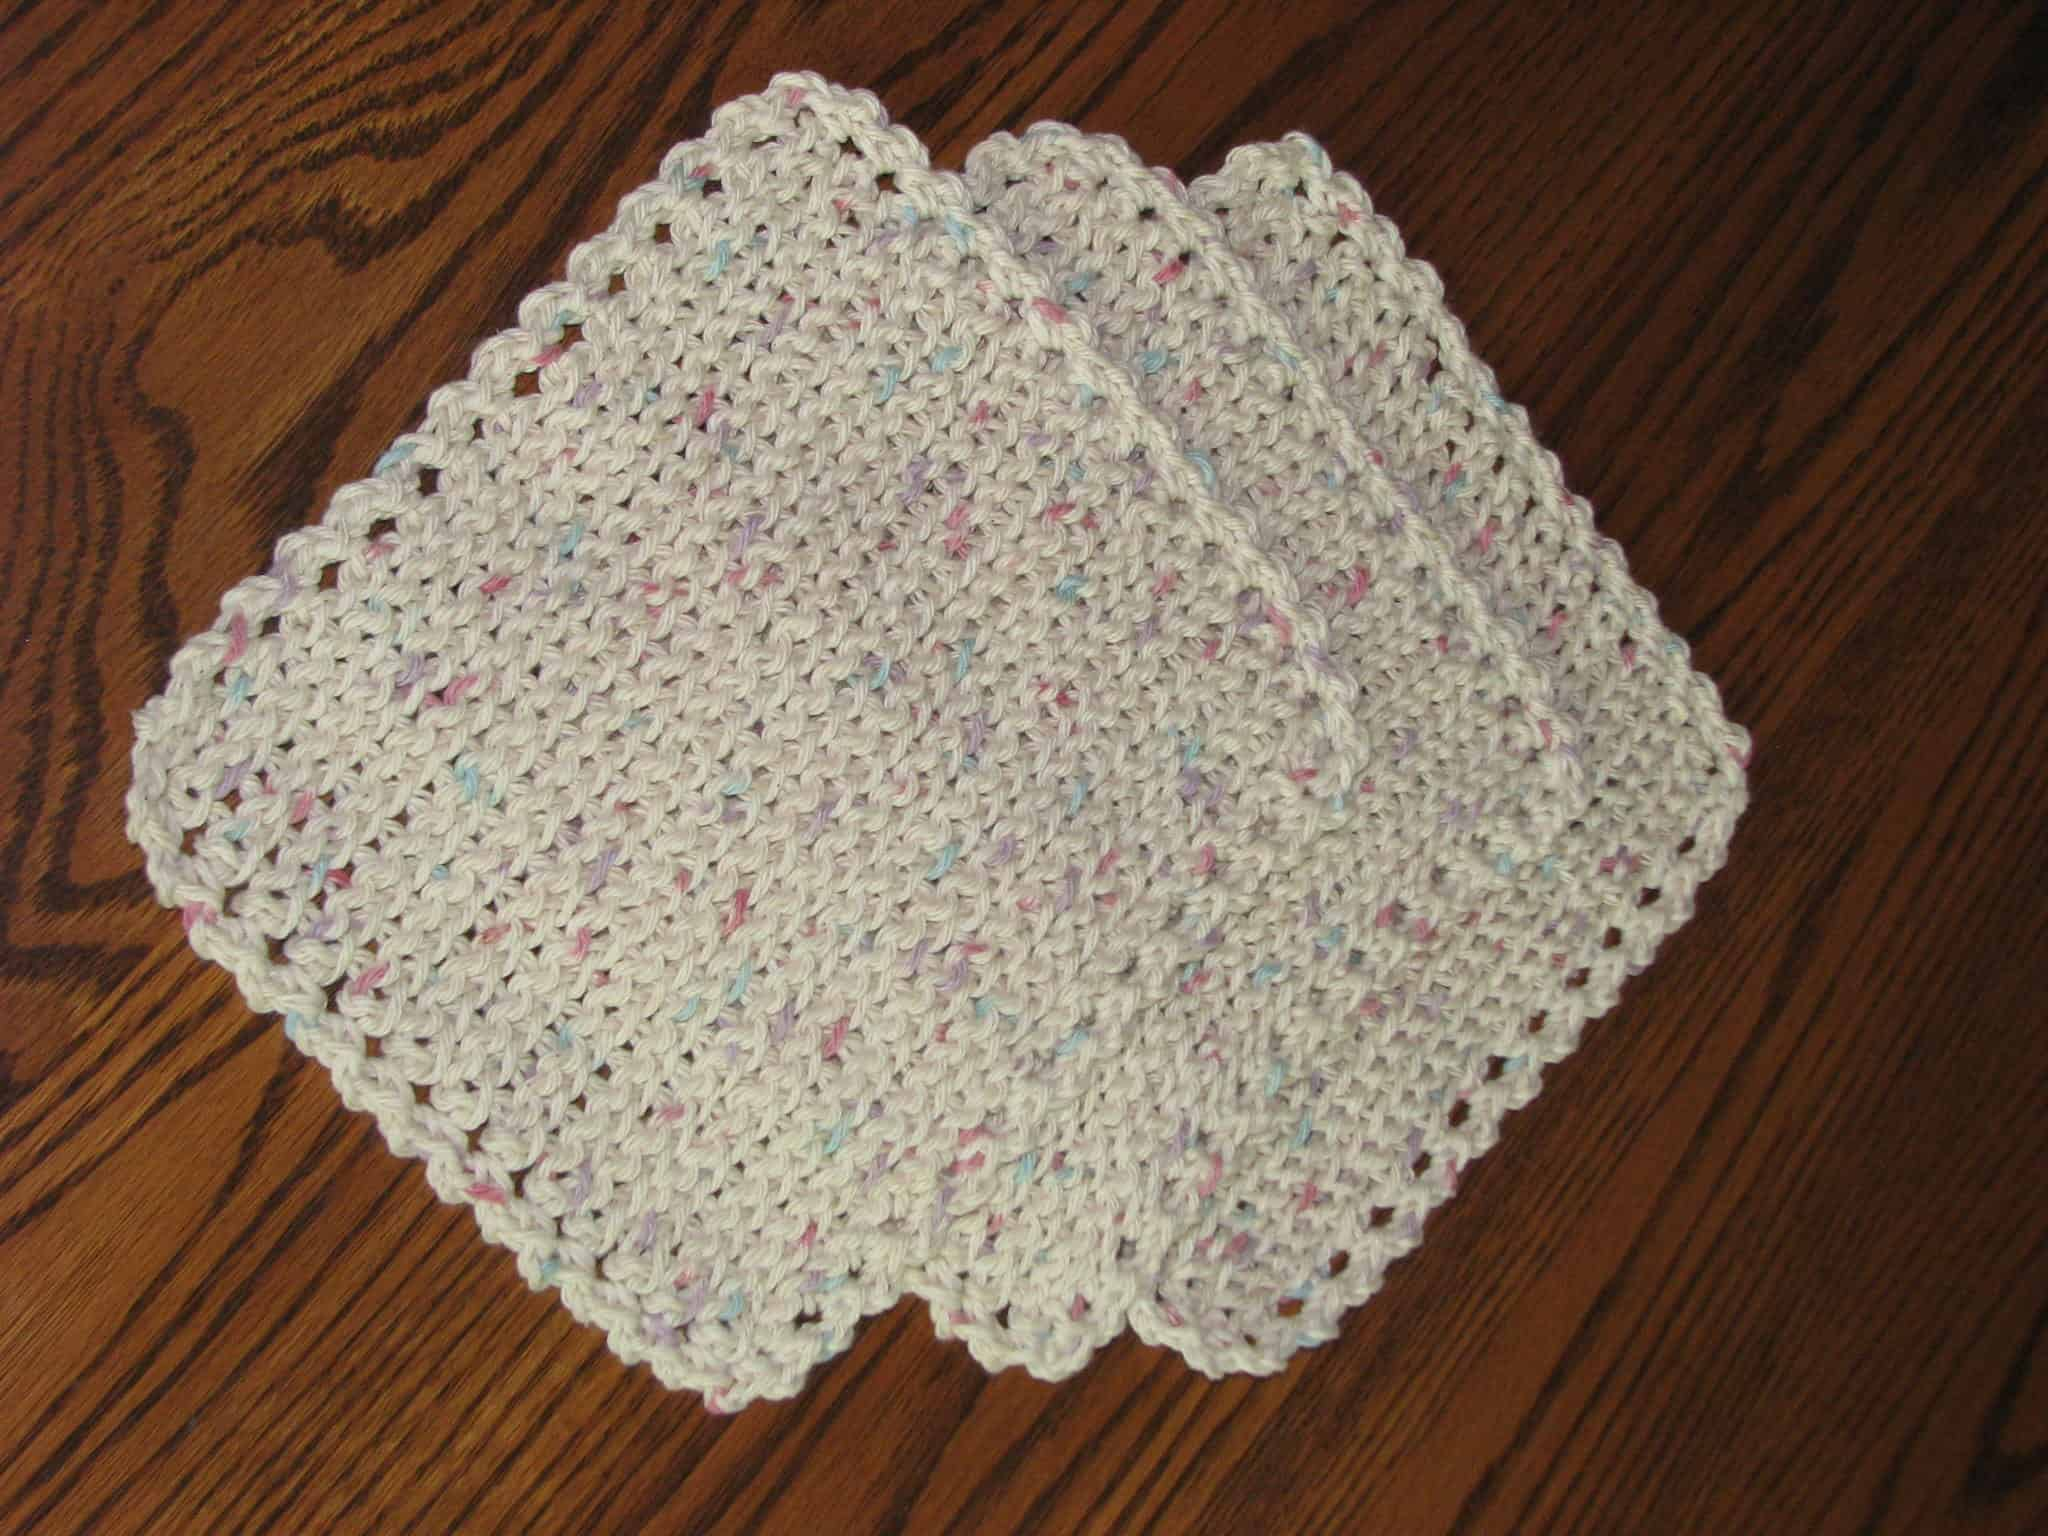 New Crocheted Dishcloths added to my Shop!